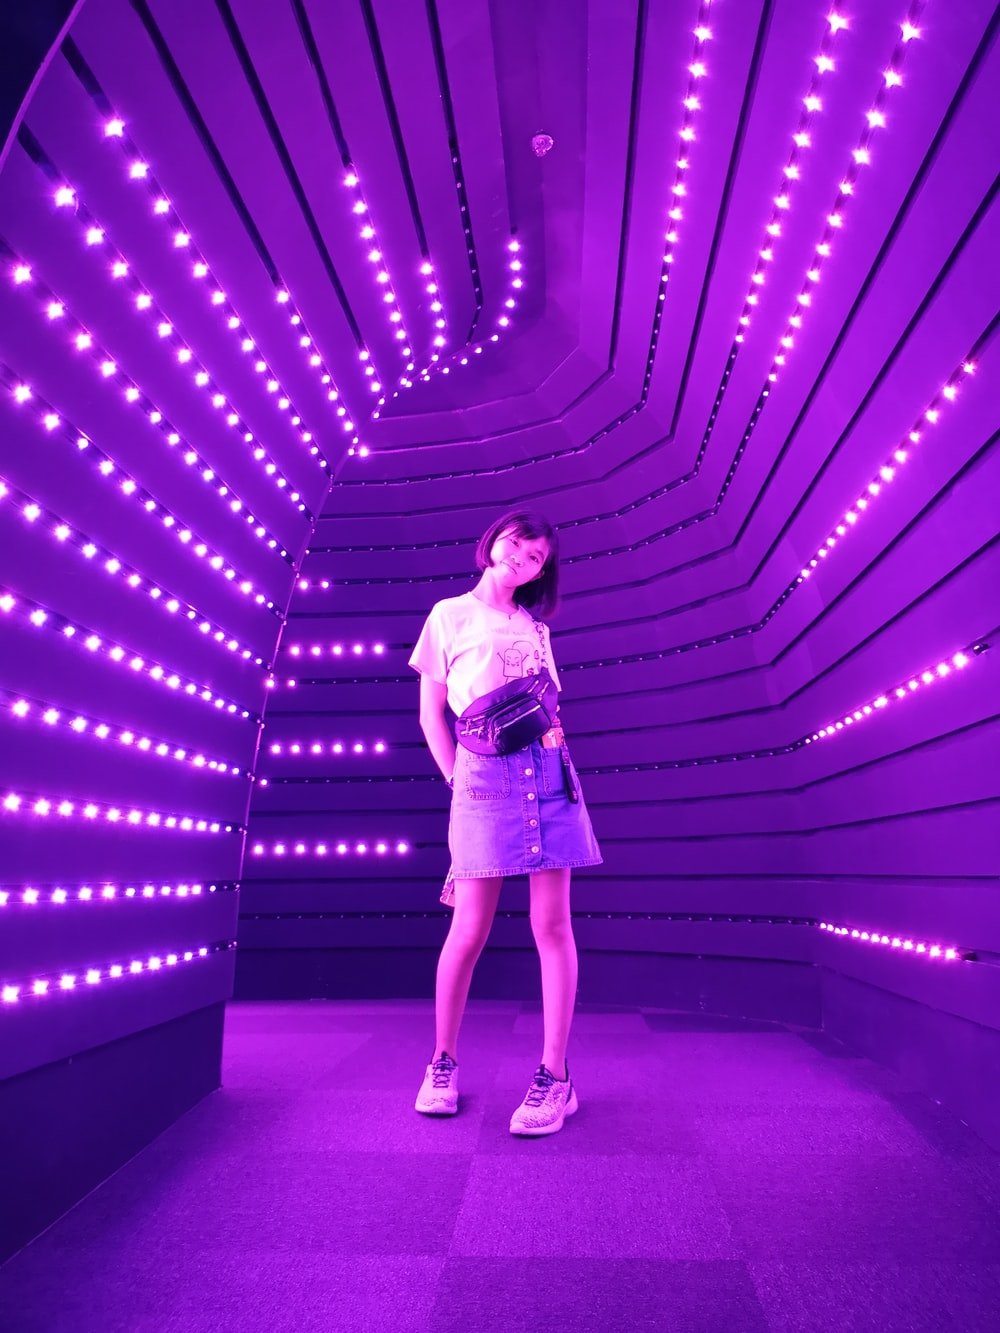 woman standing in middle of purple lighted passage